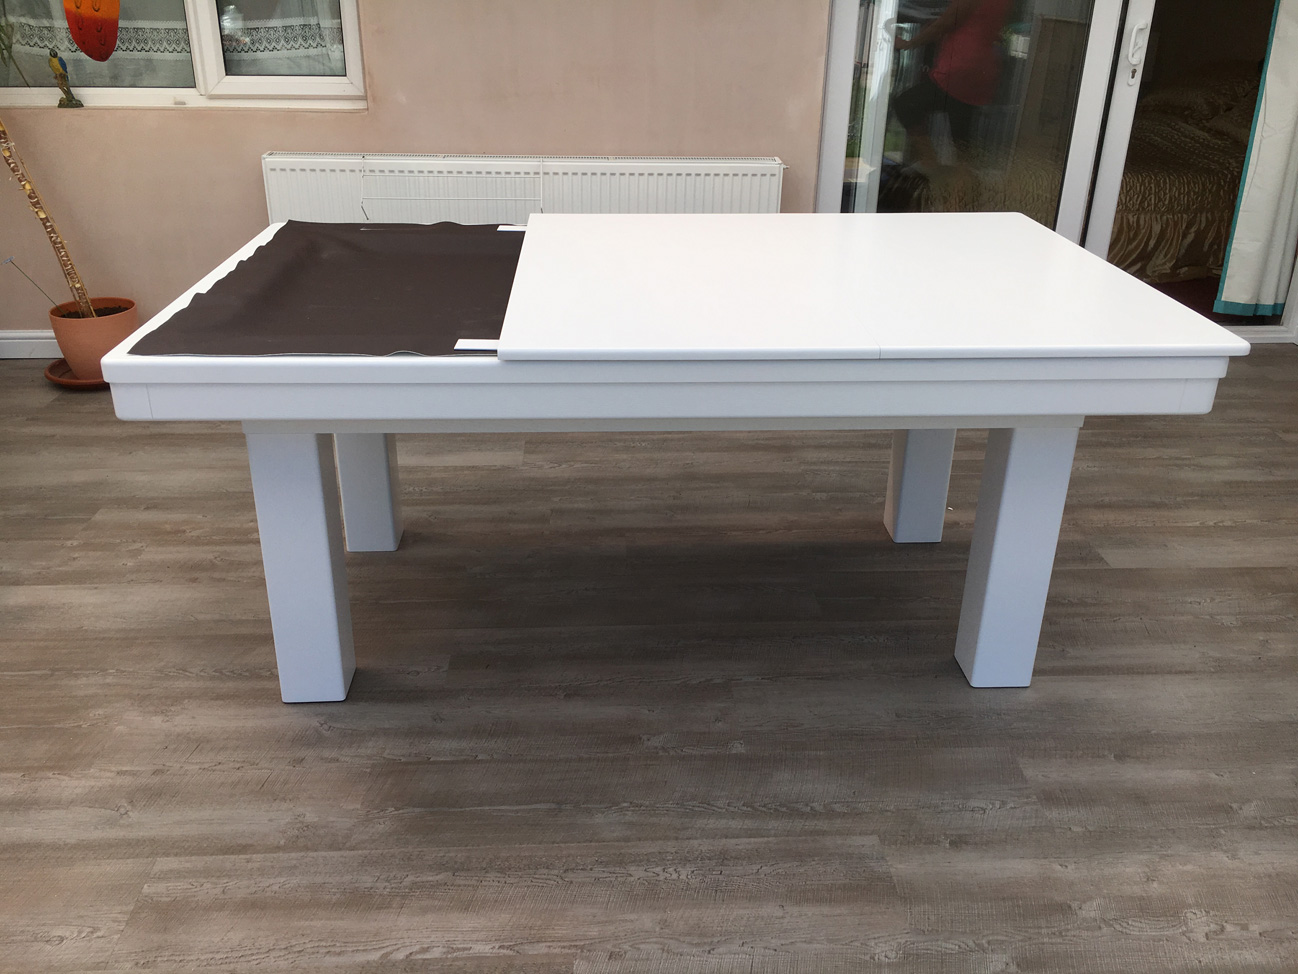 6 Ft Square Dining Table Modern 6ft Pool Dining Table In White Silver Pool